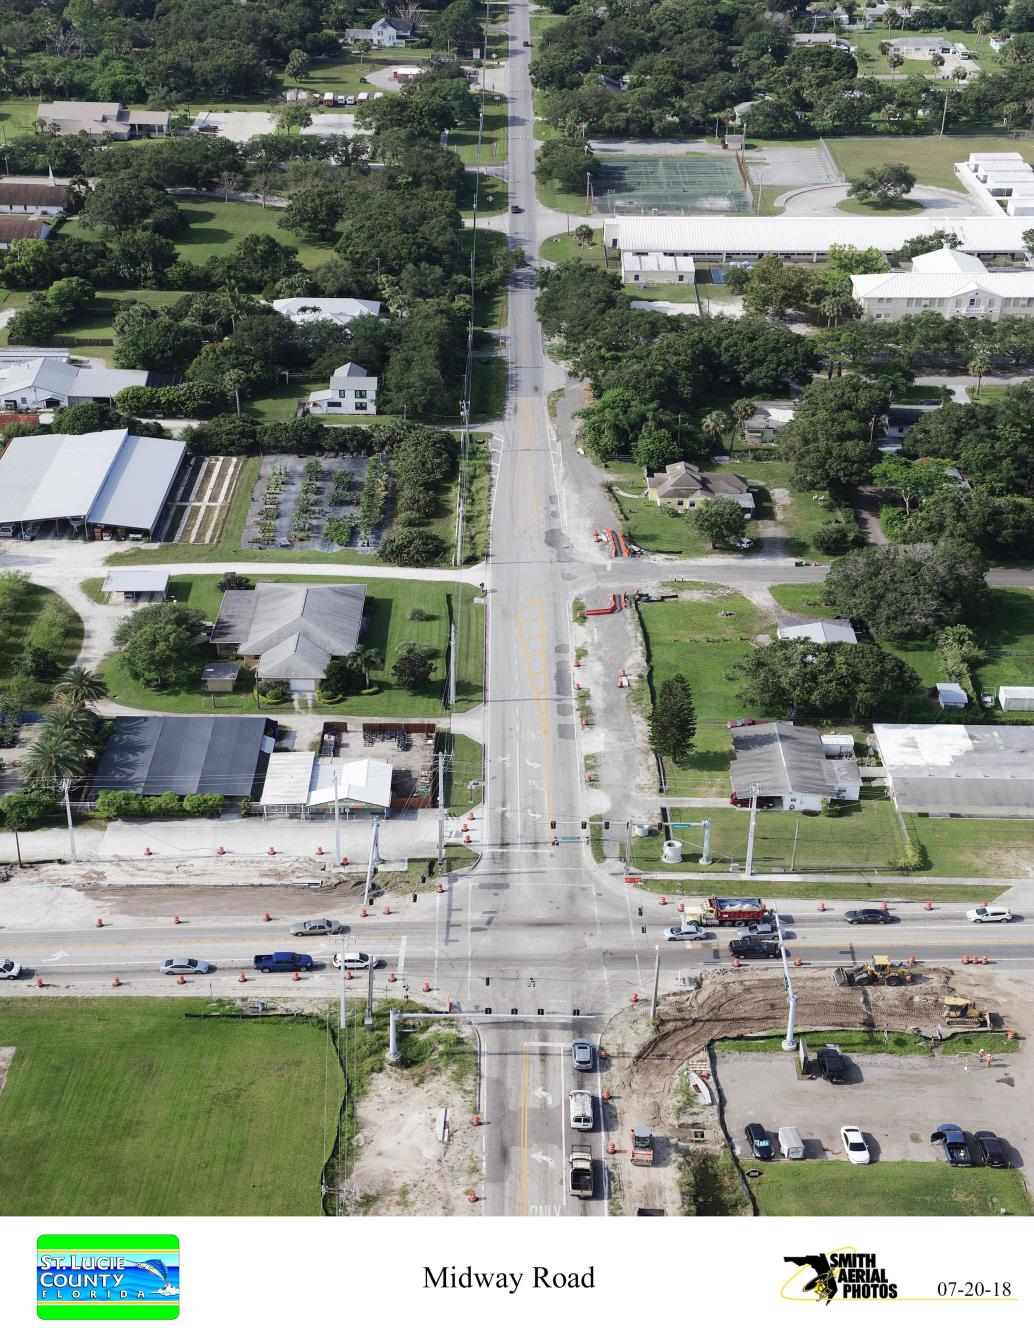 Intersection of Oleander Ave and Midway Rd from North